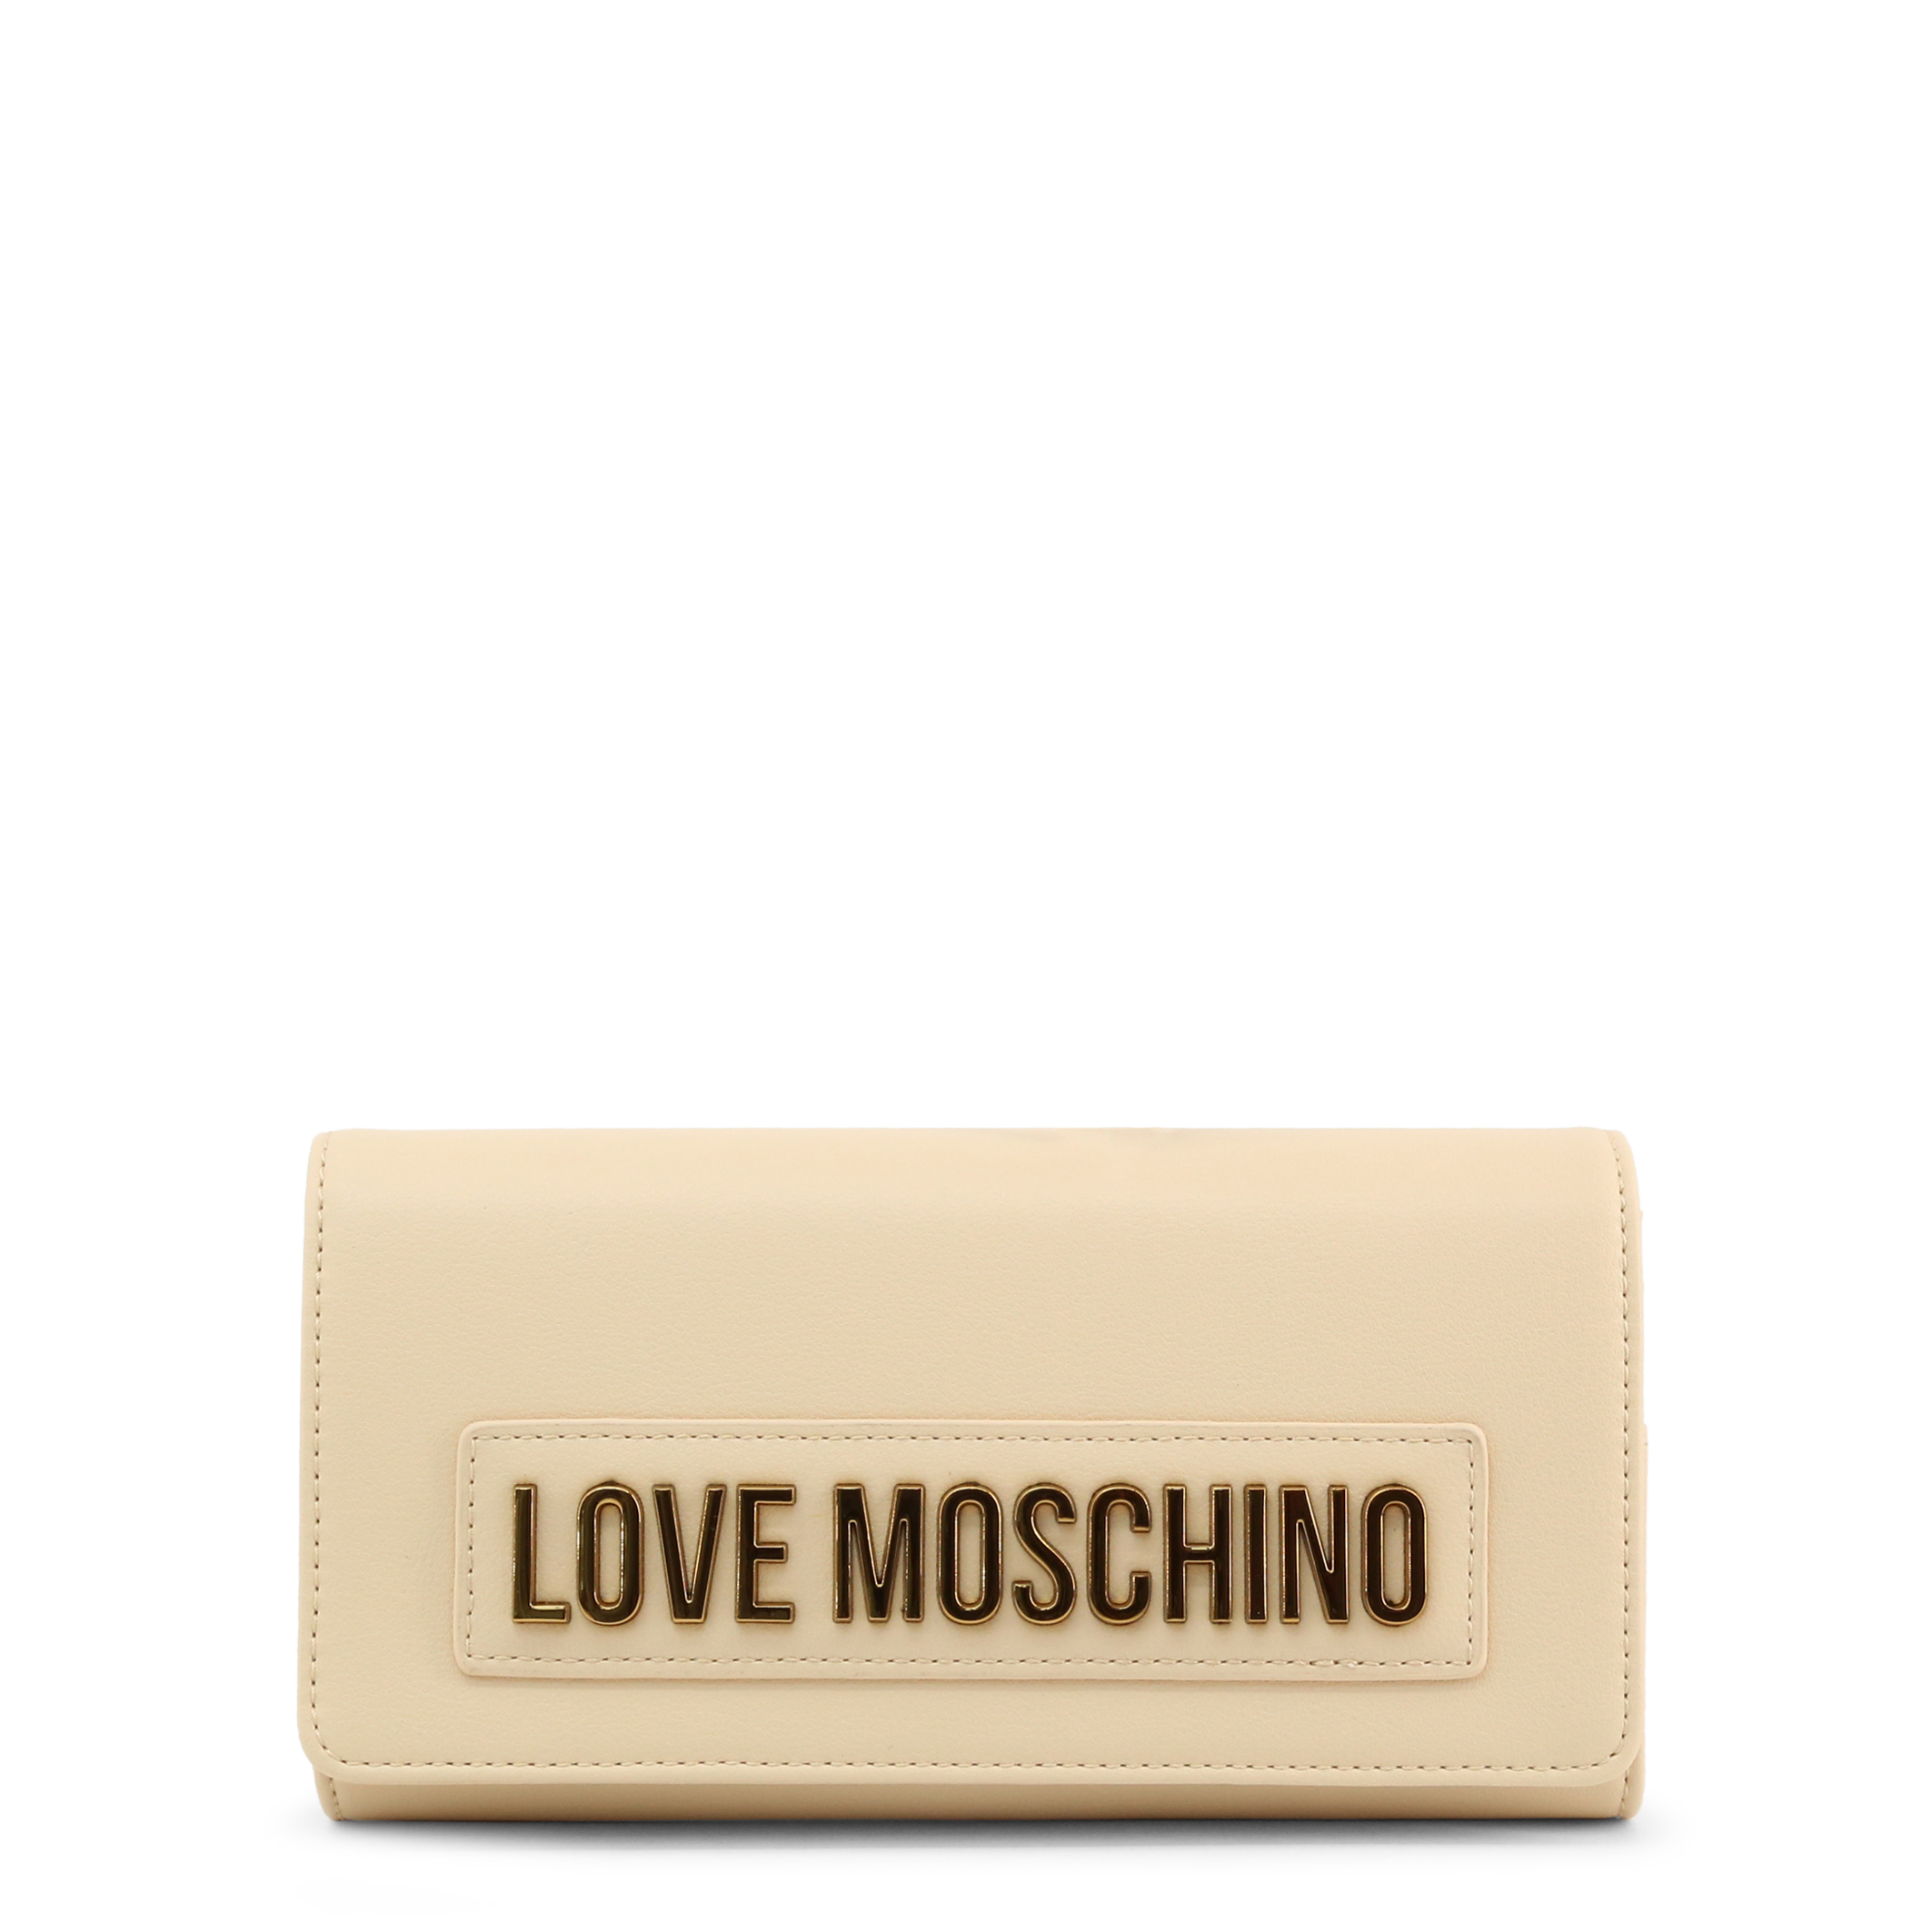 Portefeuilles / Porte-monnaie  Love moschino JC5625PP1BLK brown